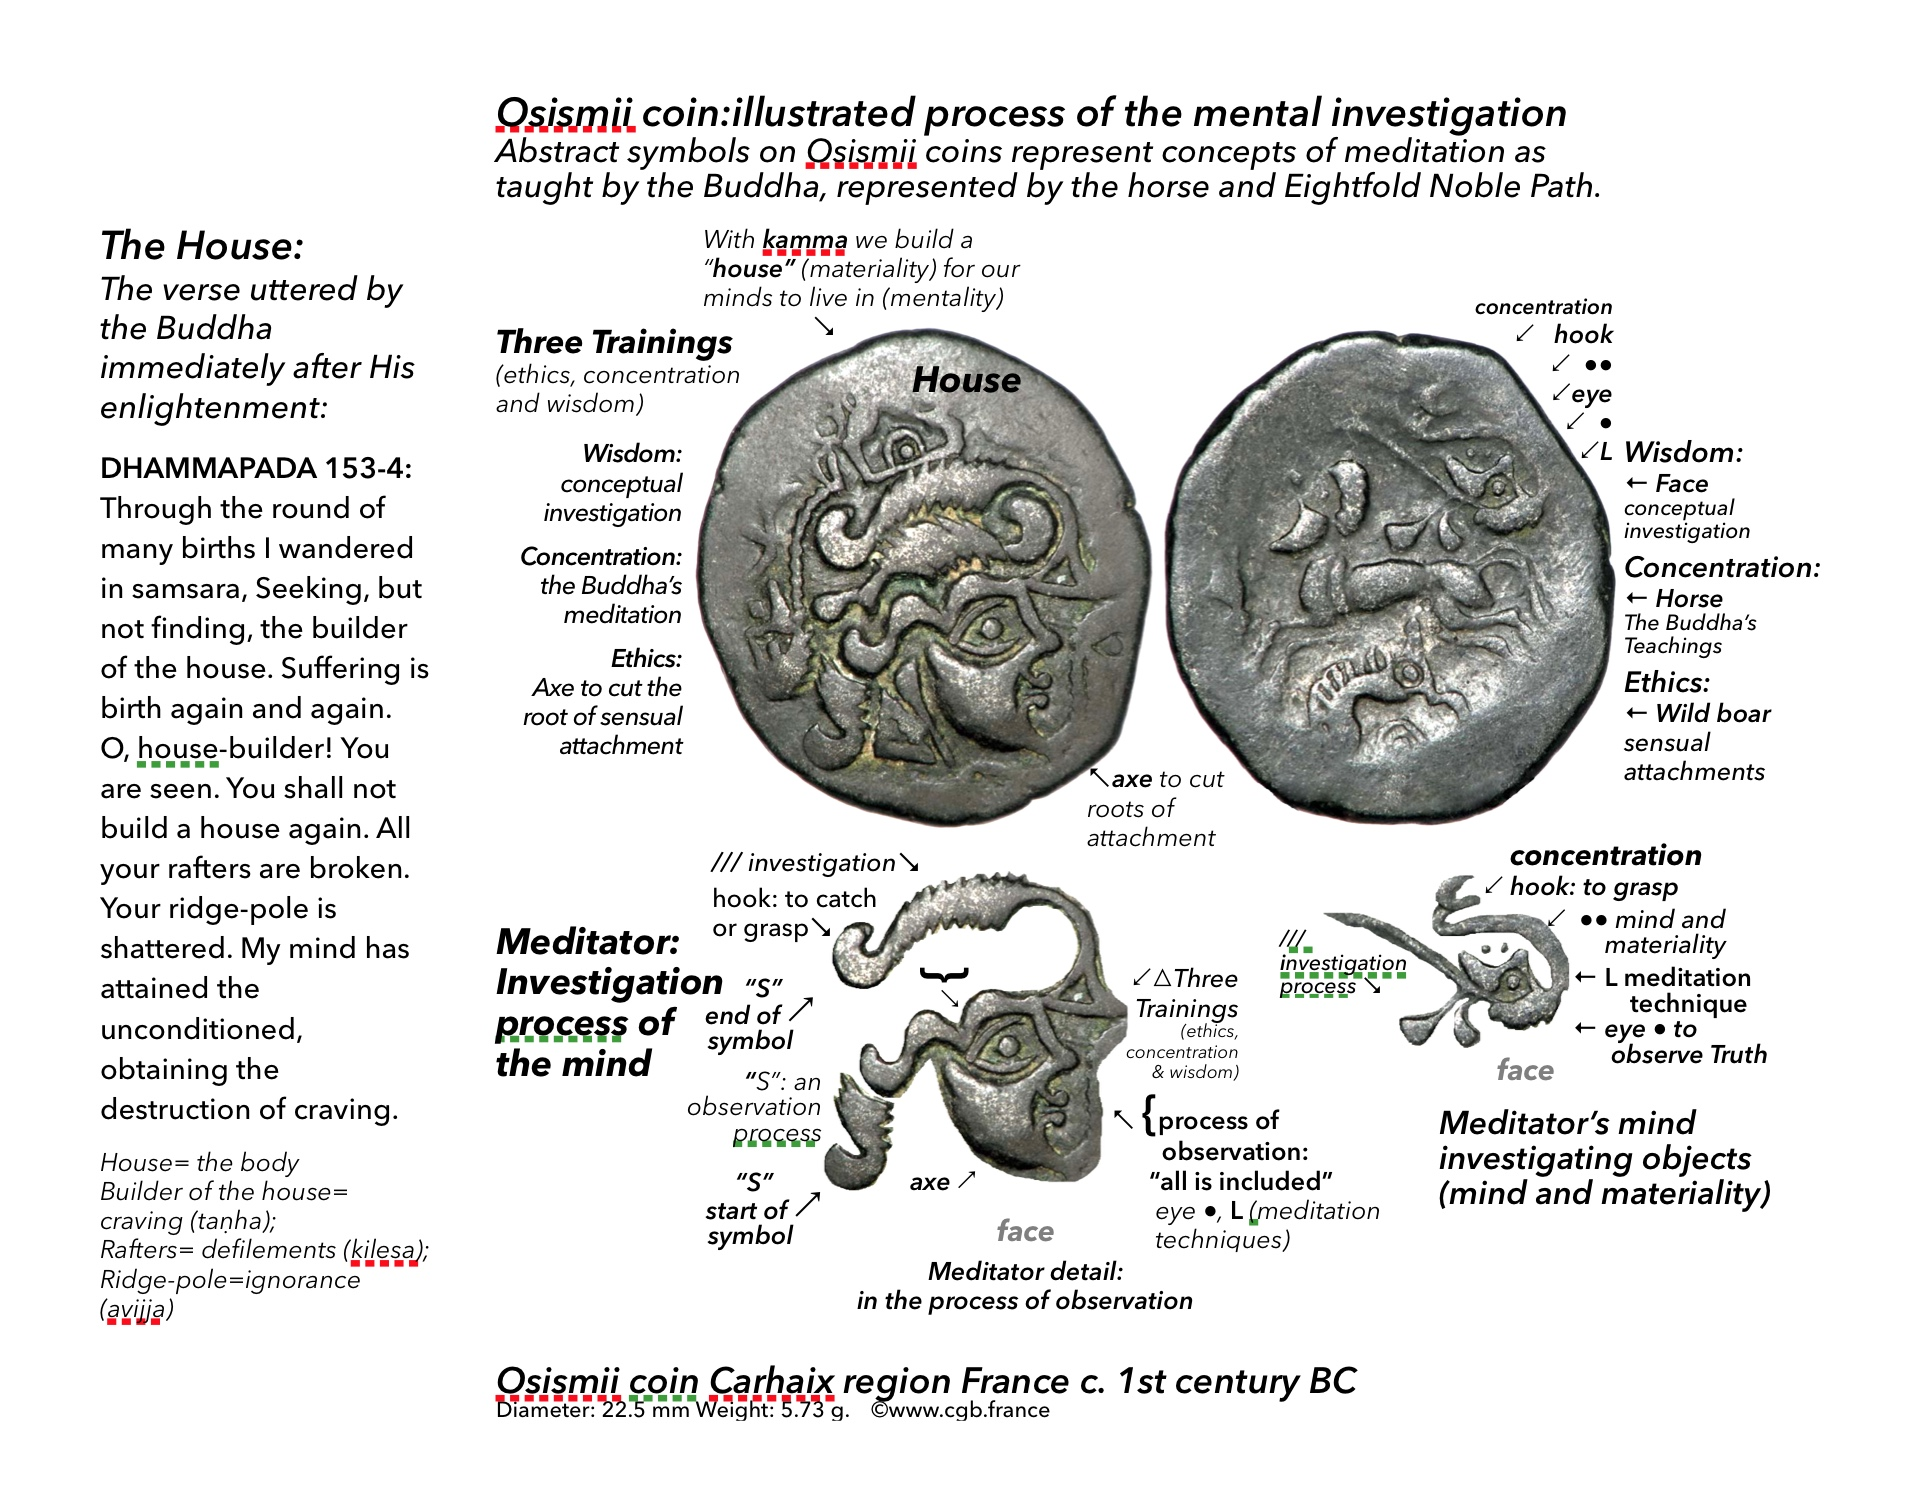 """Osismii coin: analysis of thoughts and the """"house that the mind built"""""""